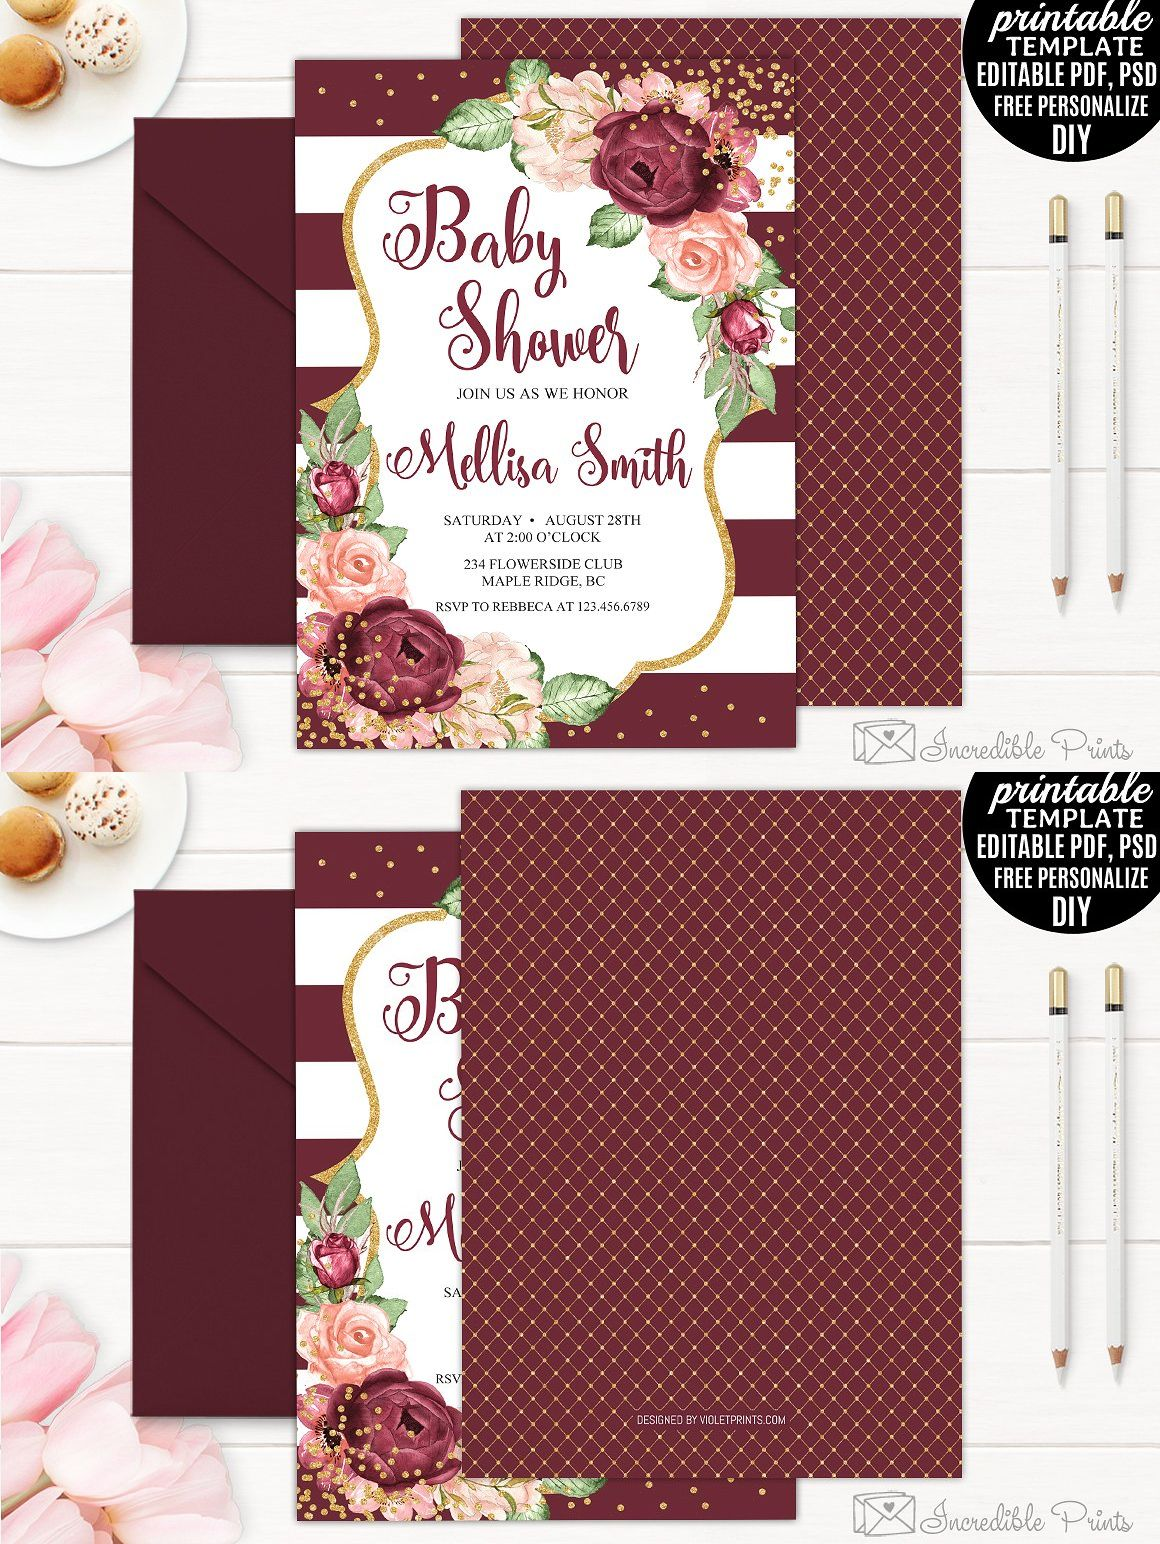 Bohemian Baby Shower Invitation Template PSD